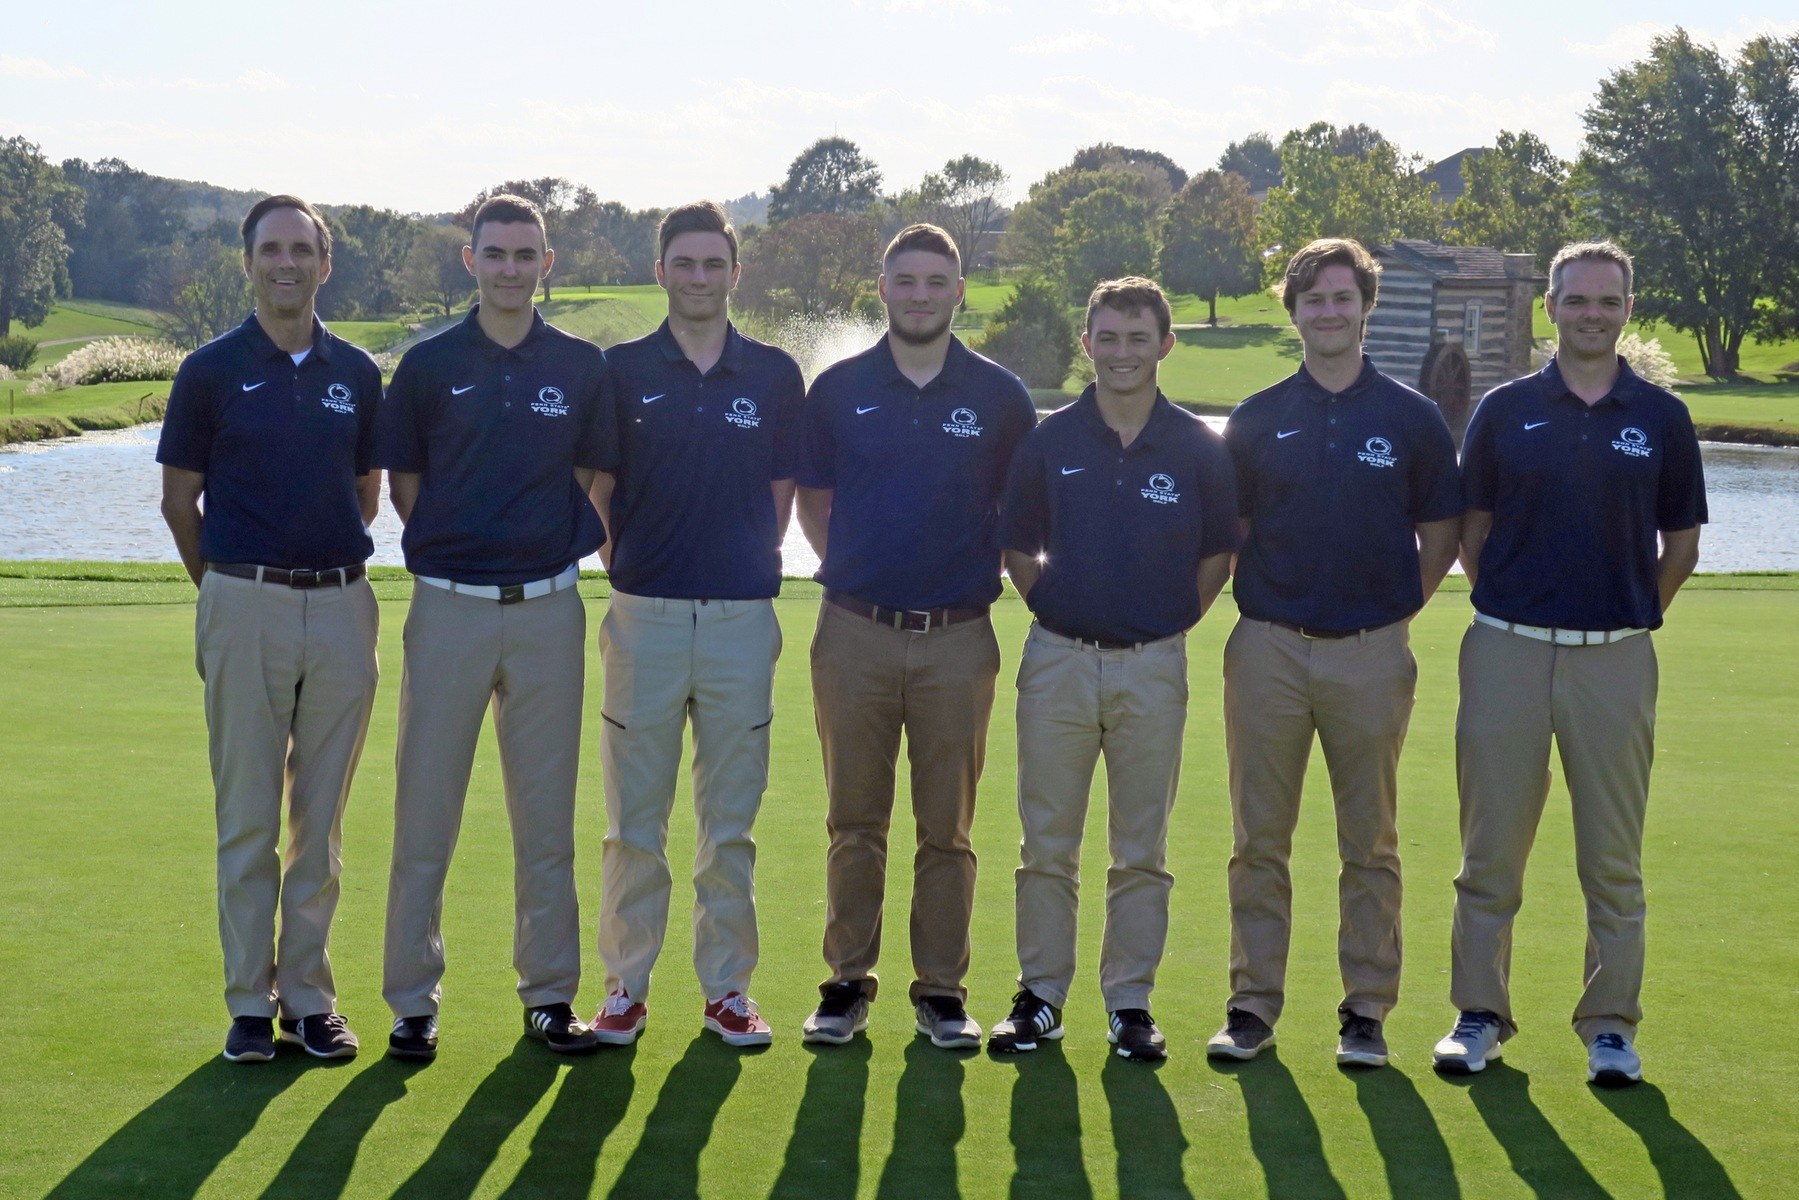 Brent Williams (center), with the 2018 Penn State York golf team.